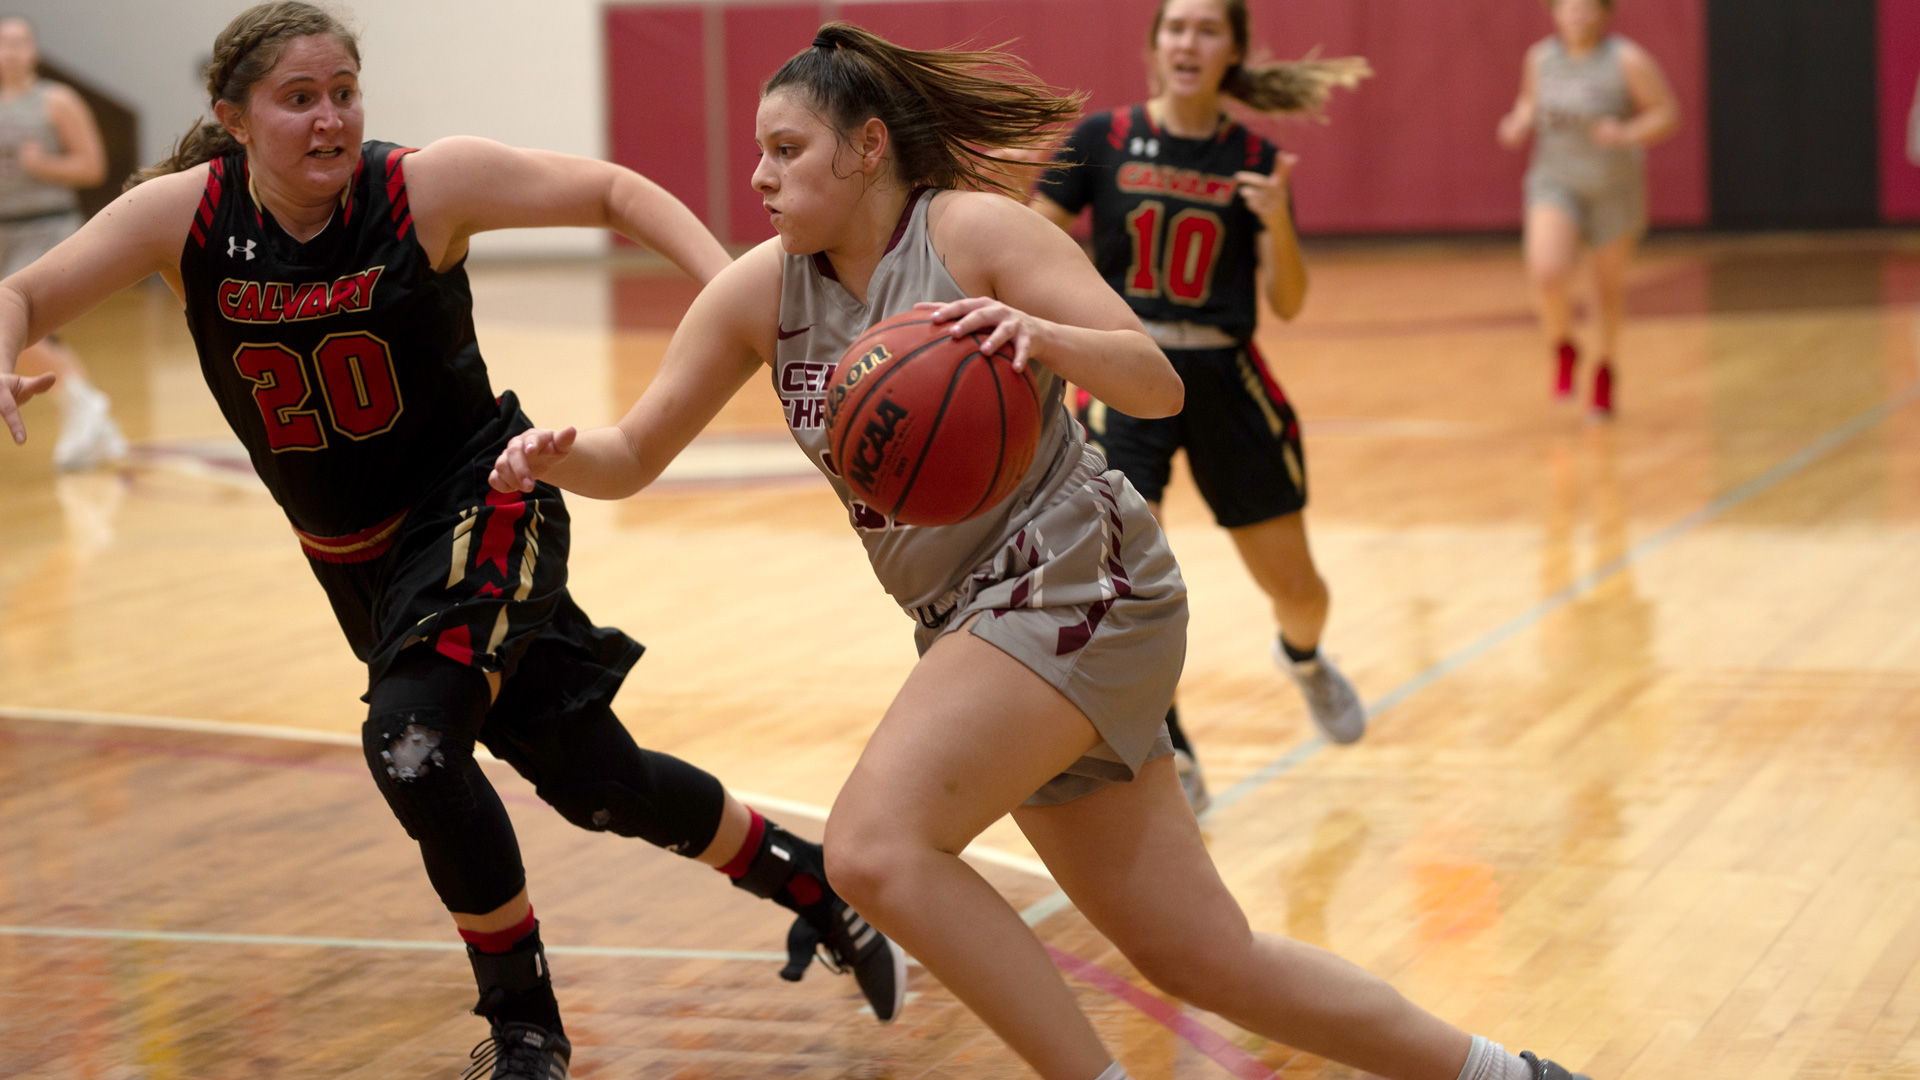 CCCB junior Vanessa Oyola scored a season-high 32 points on 7-for-16 shooting from behind the arc on Thursday during the Saints' 109-95 loss to Calvary University.